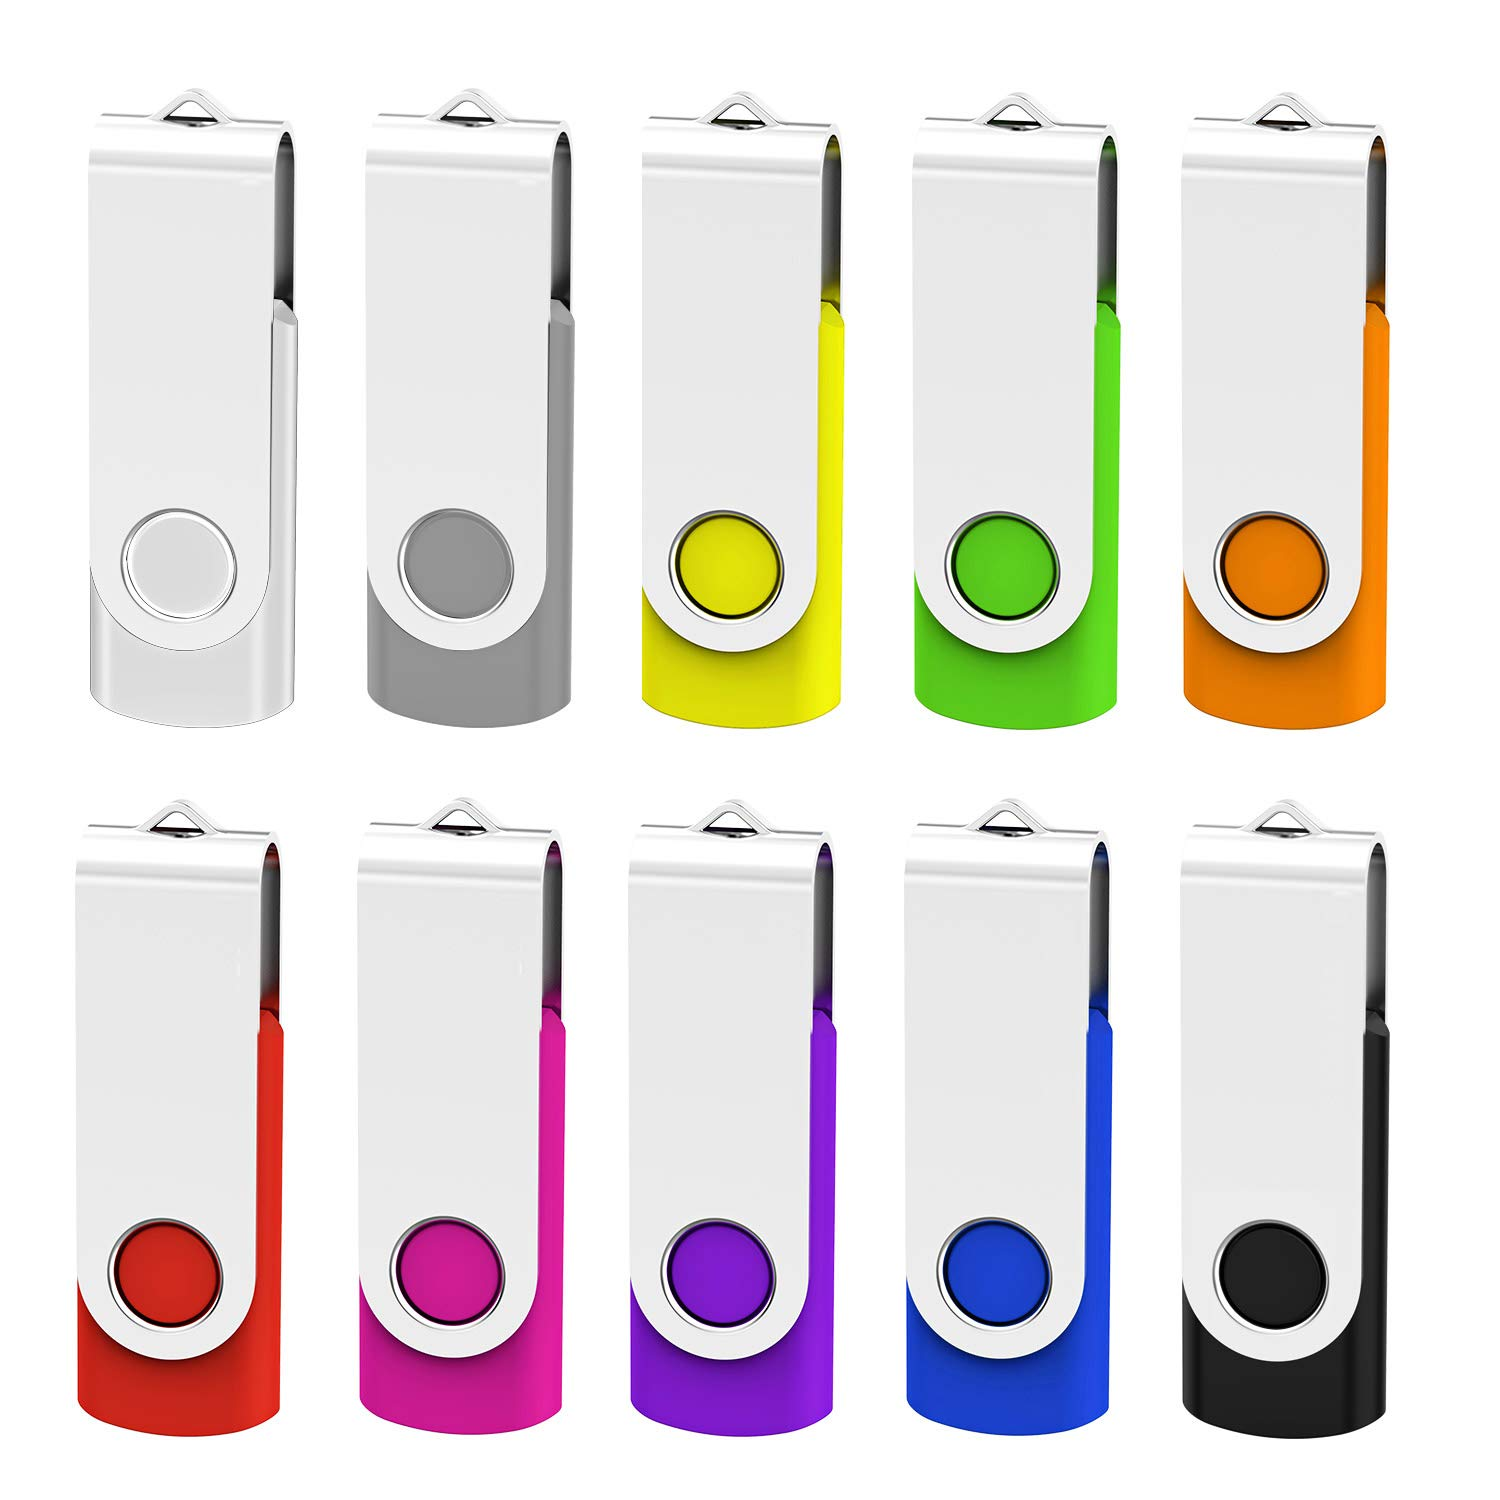 KEATHY 10 Pack 16GB USB Flash Drive USB 2.0 Swivel Thumb Drive Memory Stick Jump Drive Pen Drive - 10 Mixed Color